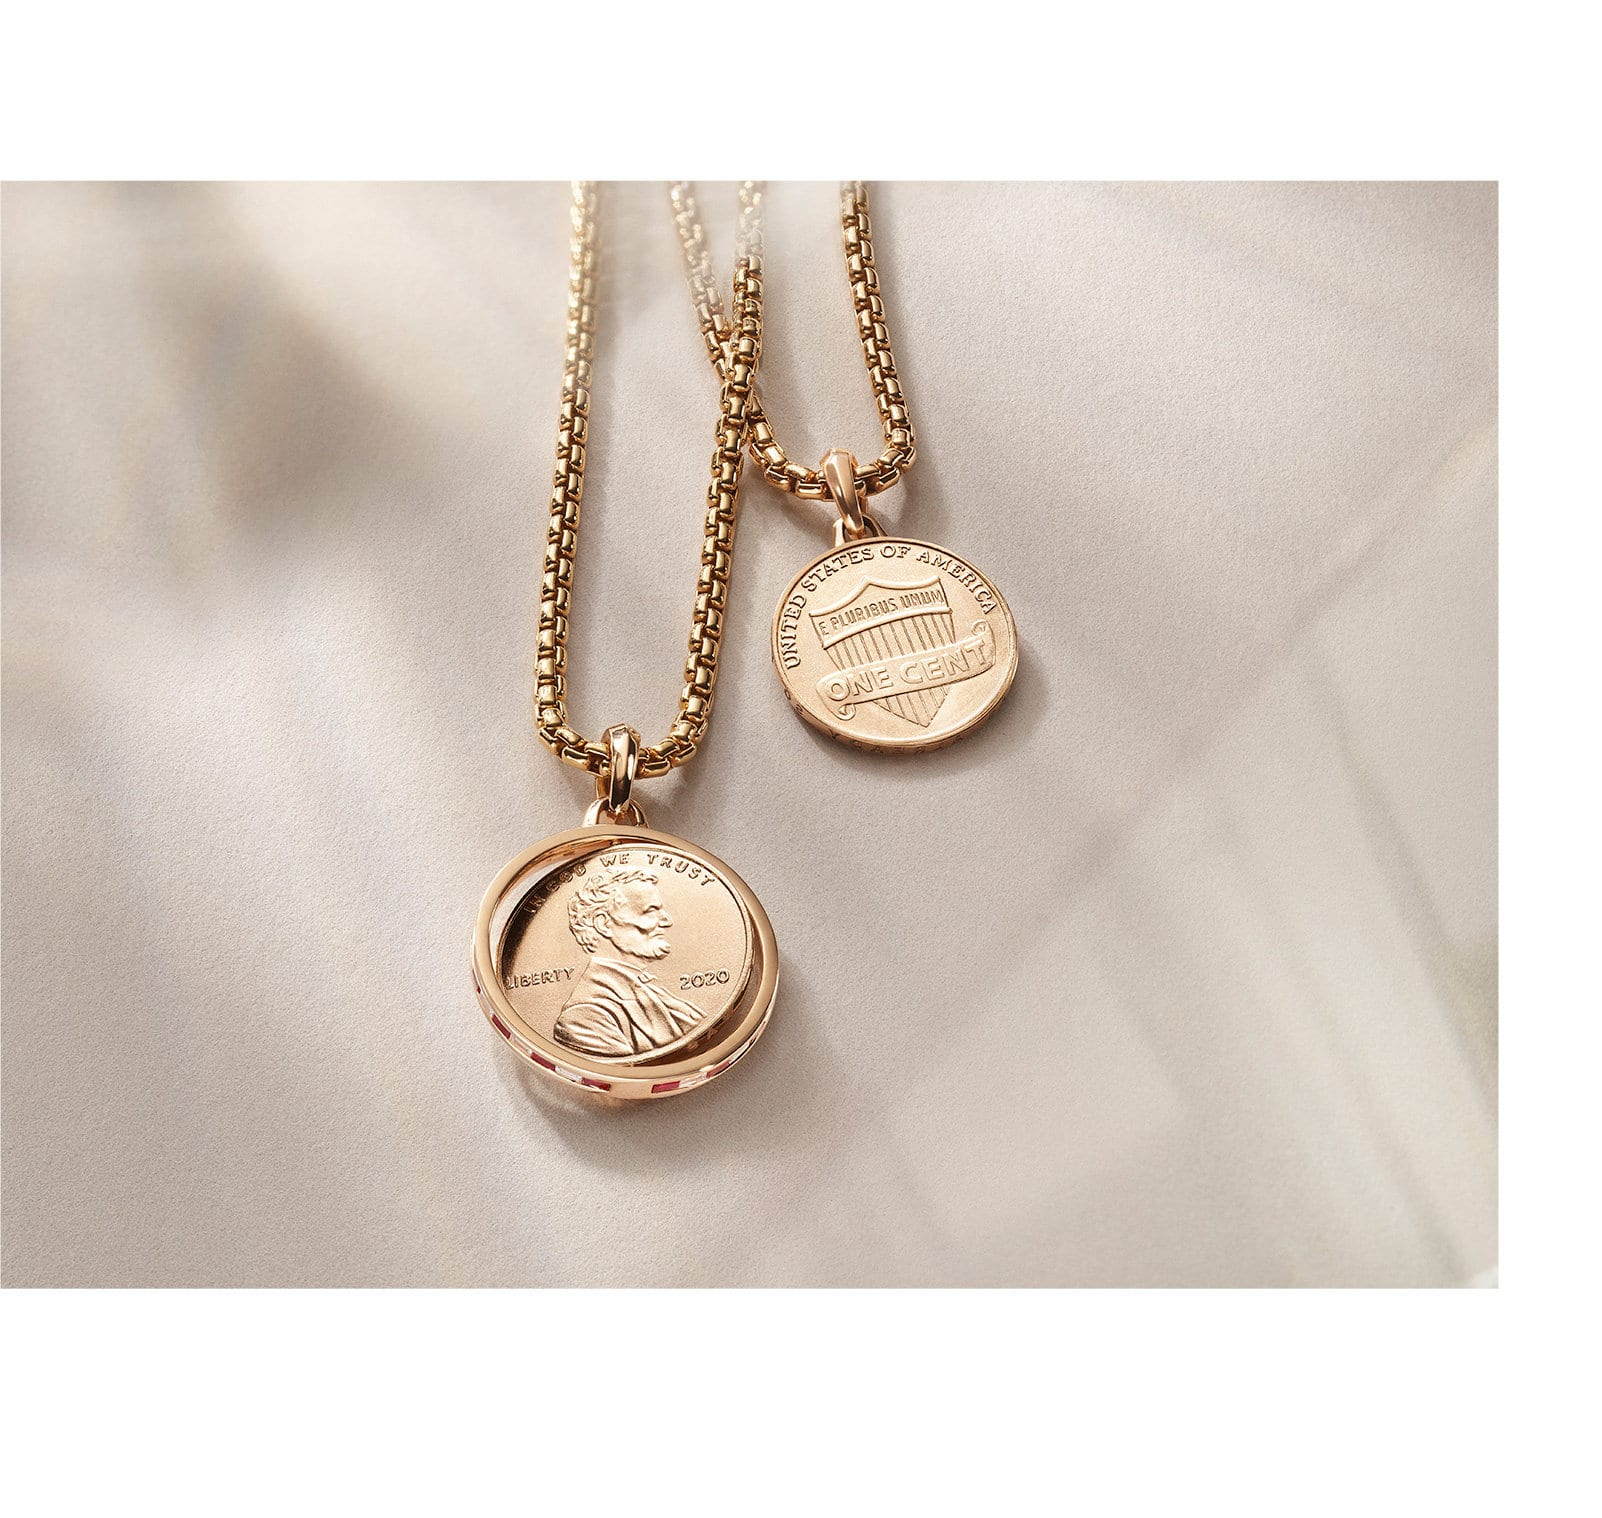 An image showing two David Yurman x Jill Magid penny amulets strung on box chains. The jewelry is crafted from 18K rose gold with or without ruby and diamond baguettes